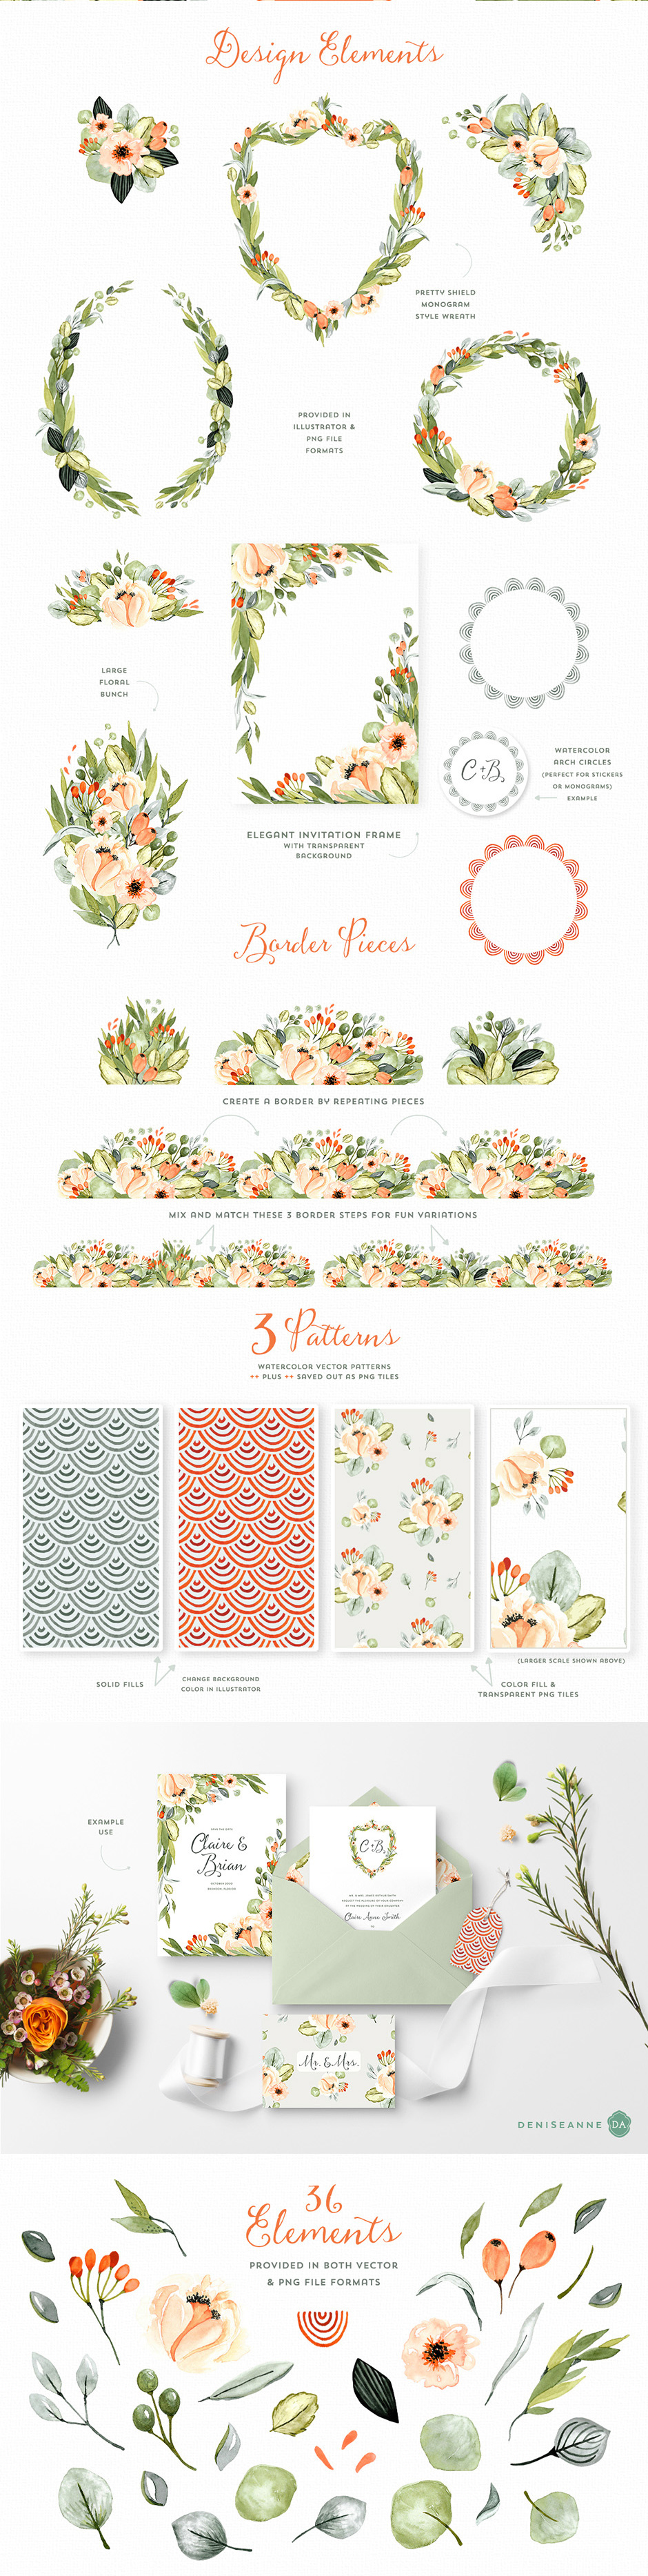 Orchard Park Floral Elements + More!